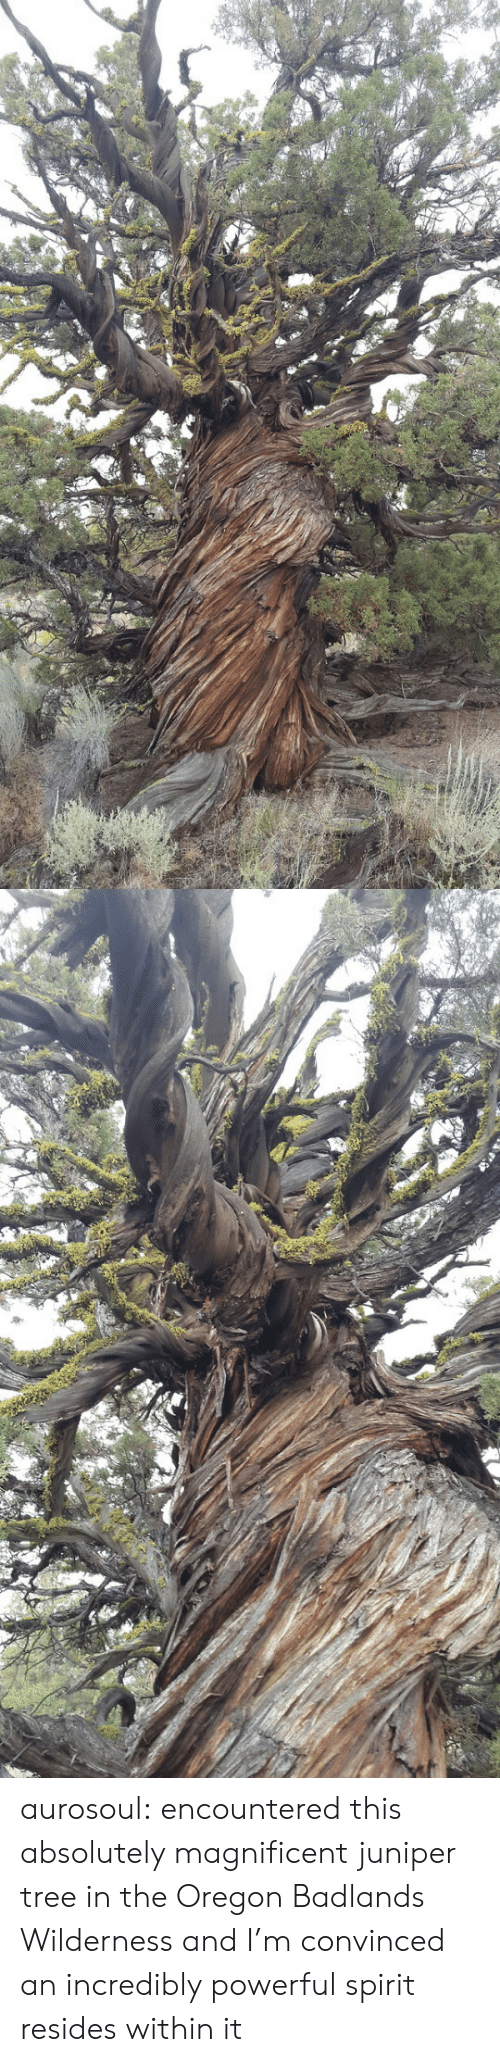 Incredibly: aurosoul: encountered this absolutely magnificent juniper tree in the Oregon Badlands Wilderness and I'm convinced an incredibly powerful spirit resides within it